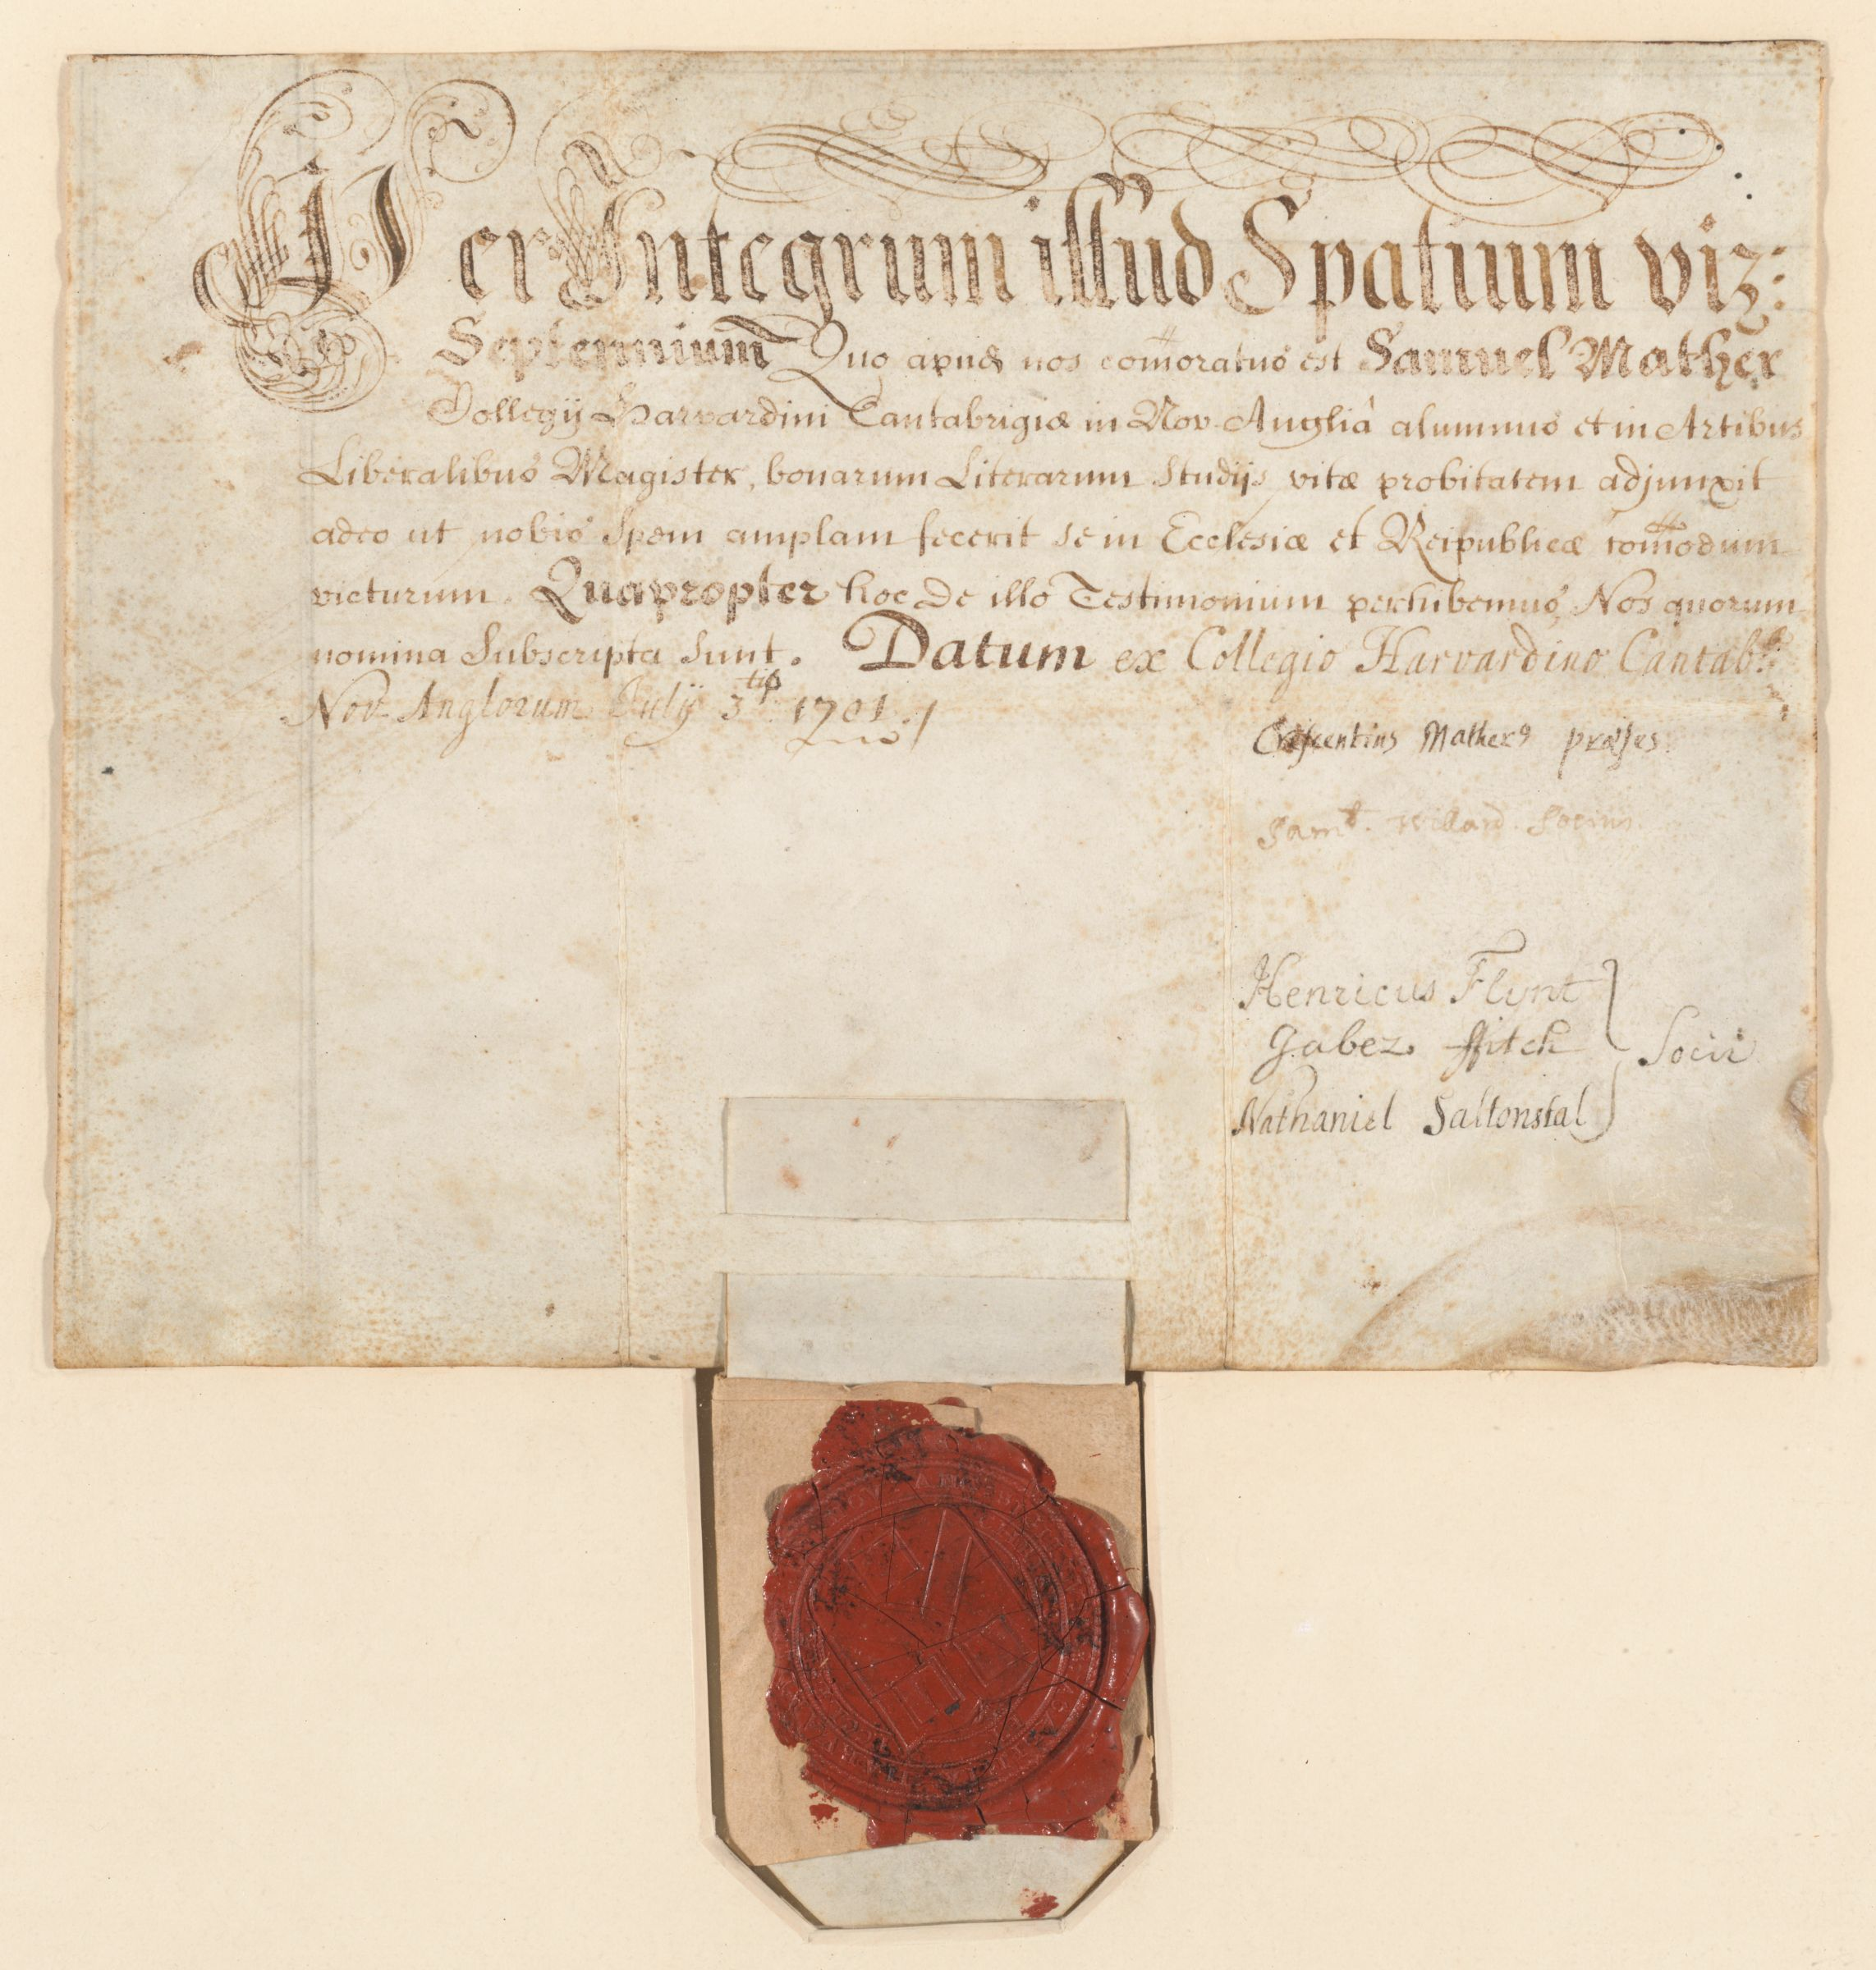 Harvard College Master of Arts diploma of Samuel Mather, 1701 July 3